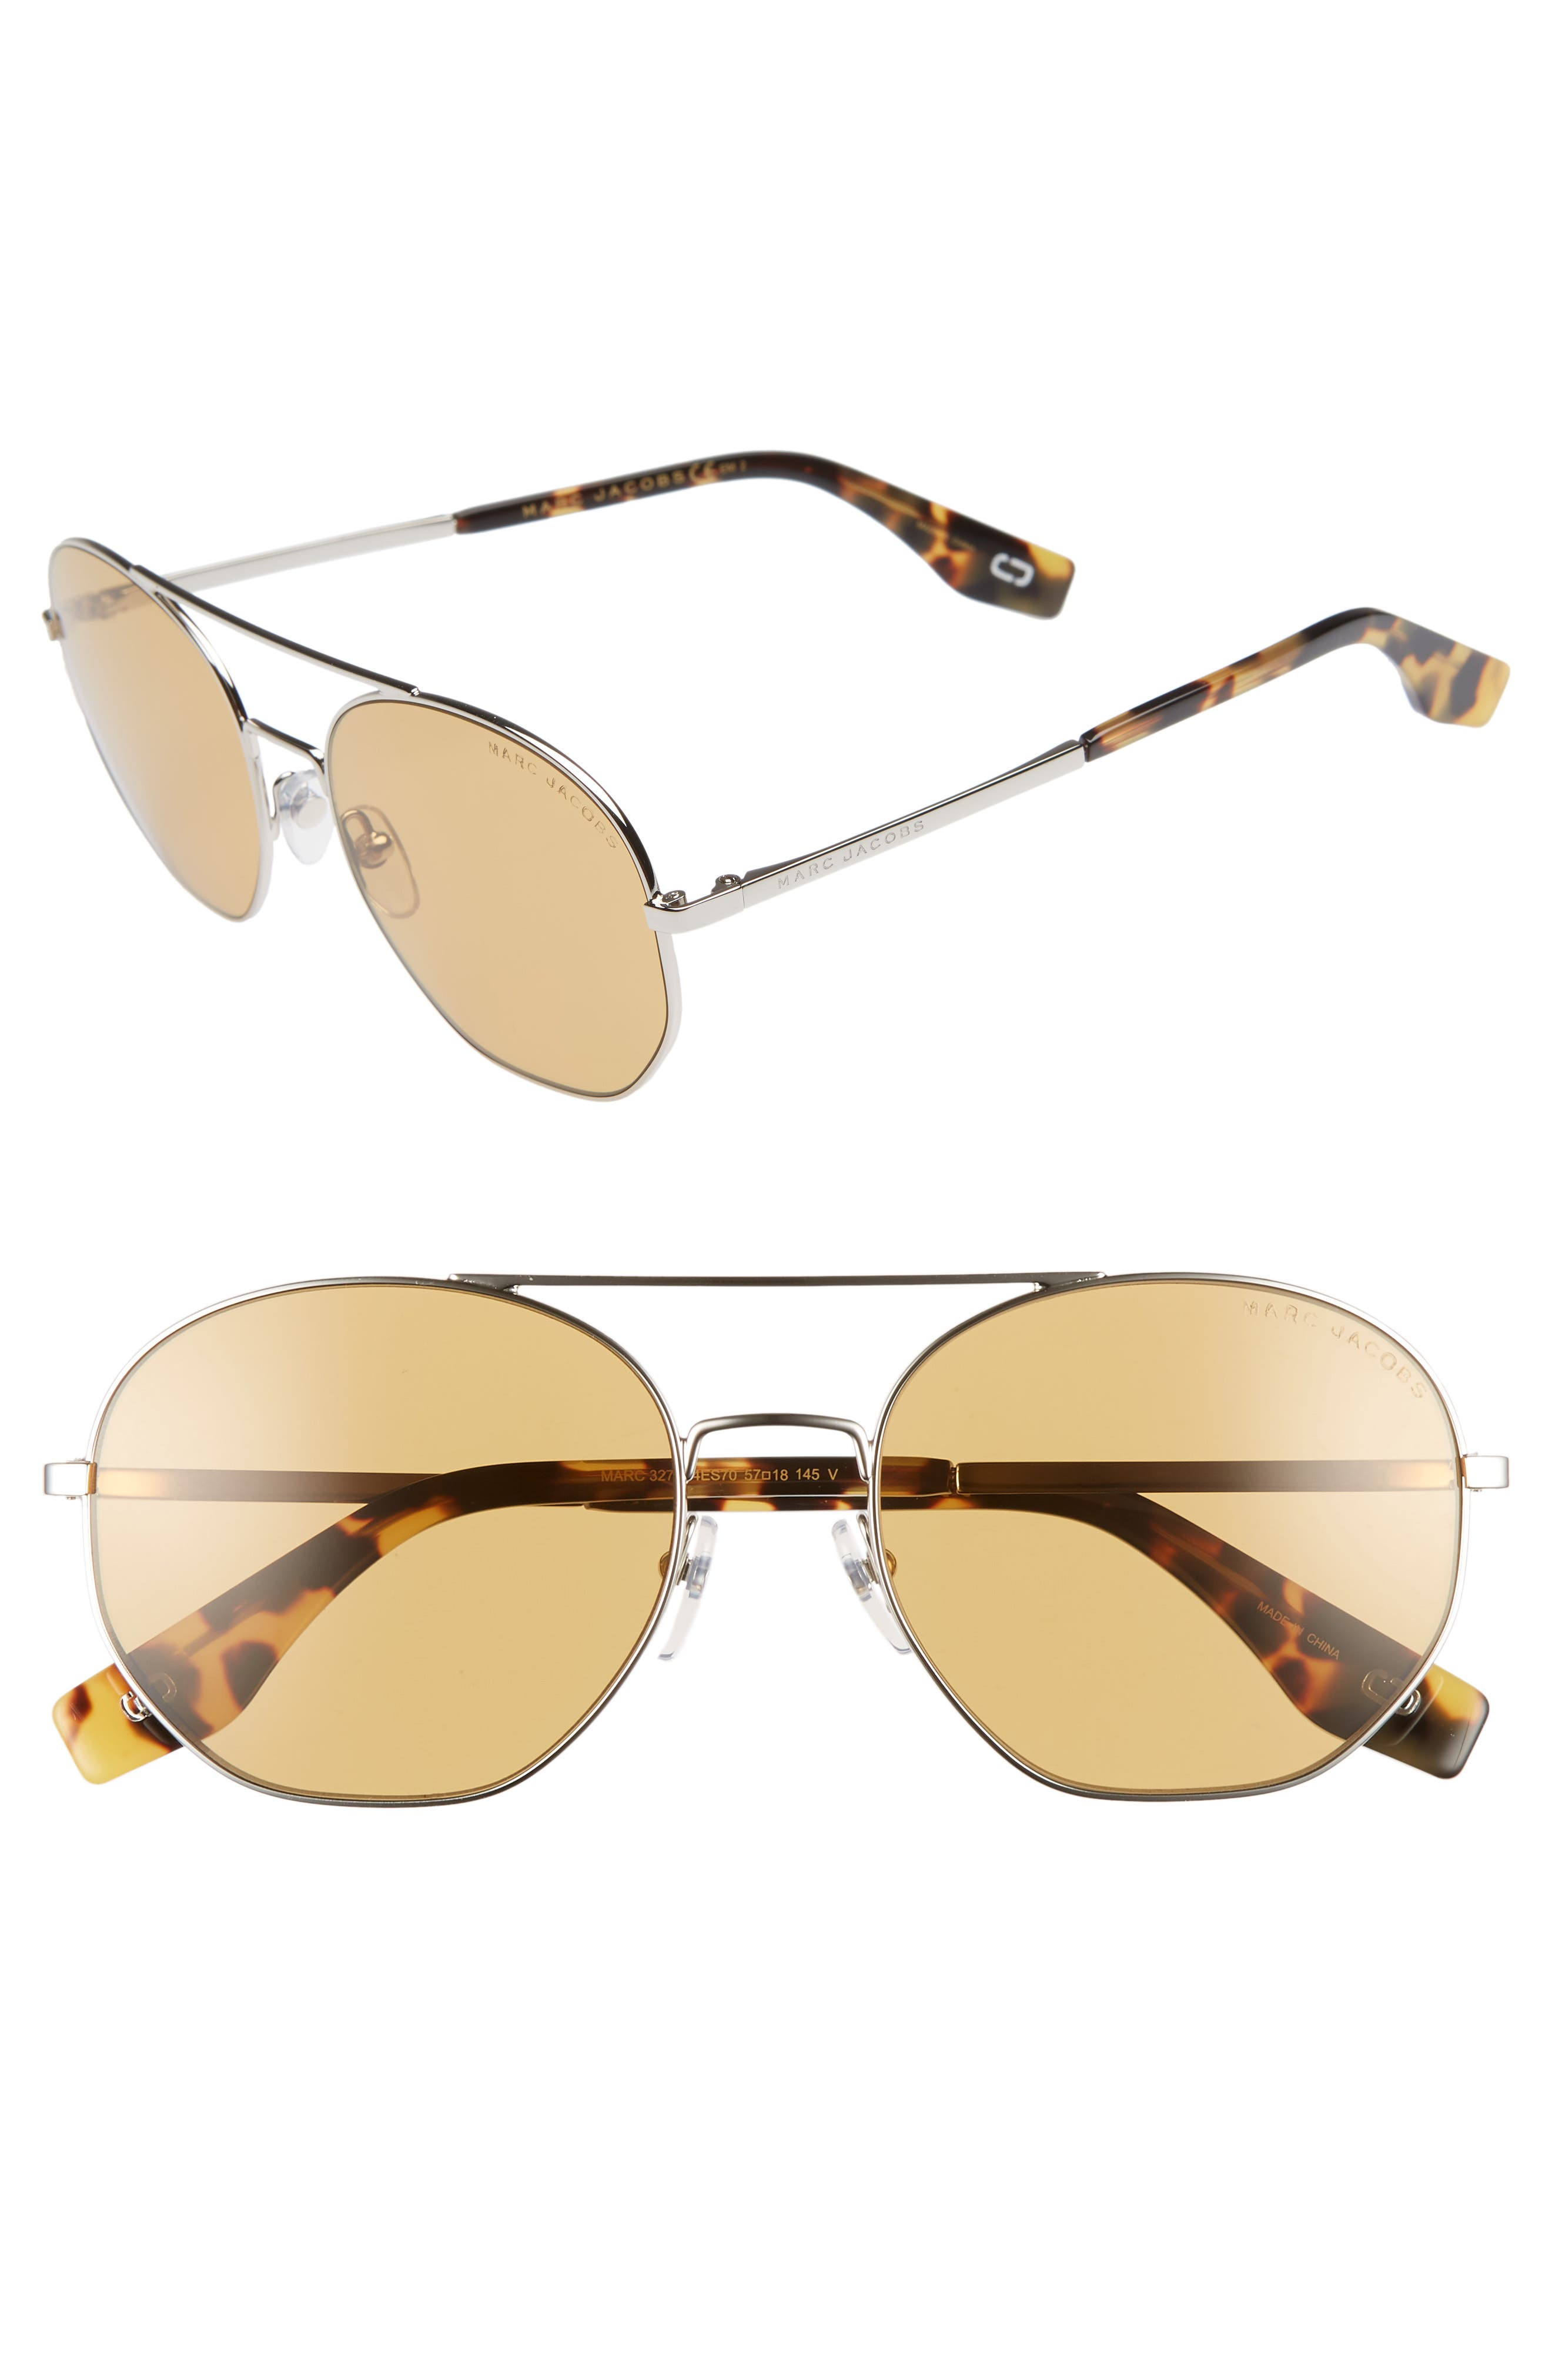 57mm Round Aviator Sunglasses,                         Main,                         color, SILVER/ BROWN